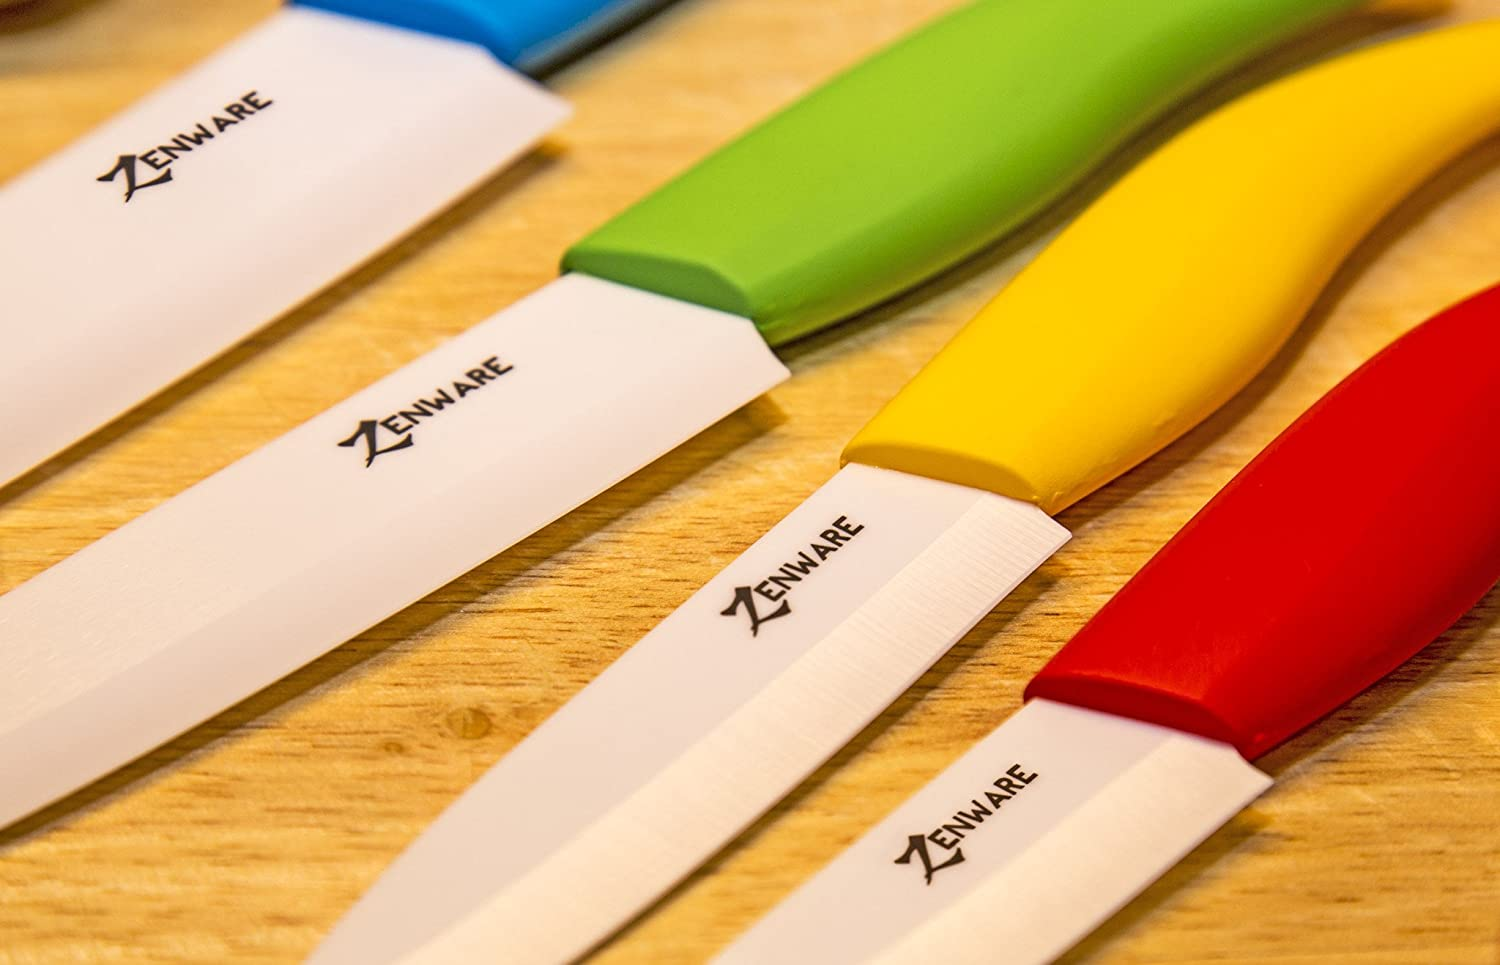 Ceramic and metal knives is the material they are made from ceramic - Amazon Com Zenware 9 Piece Multi Color Ceramic Cutlery Kitchen Knives With Fruit Peeler Knife Set Kitchen Dining